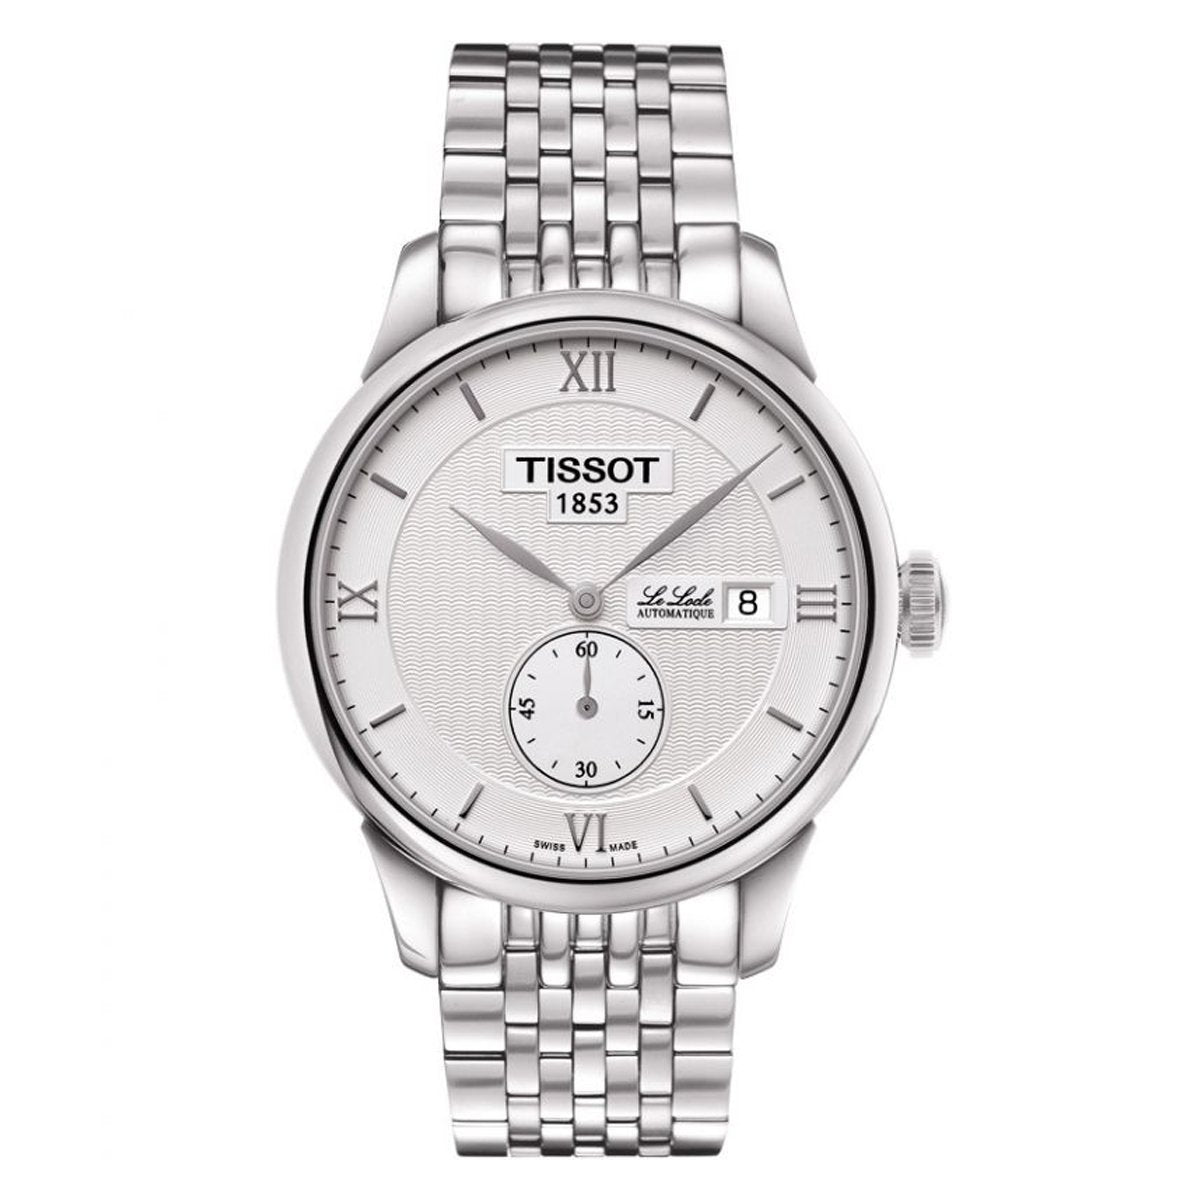 Tissot T-Classic Le Locle White - Watches & Crystals